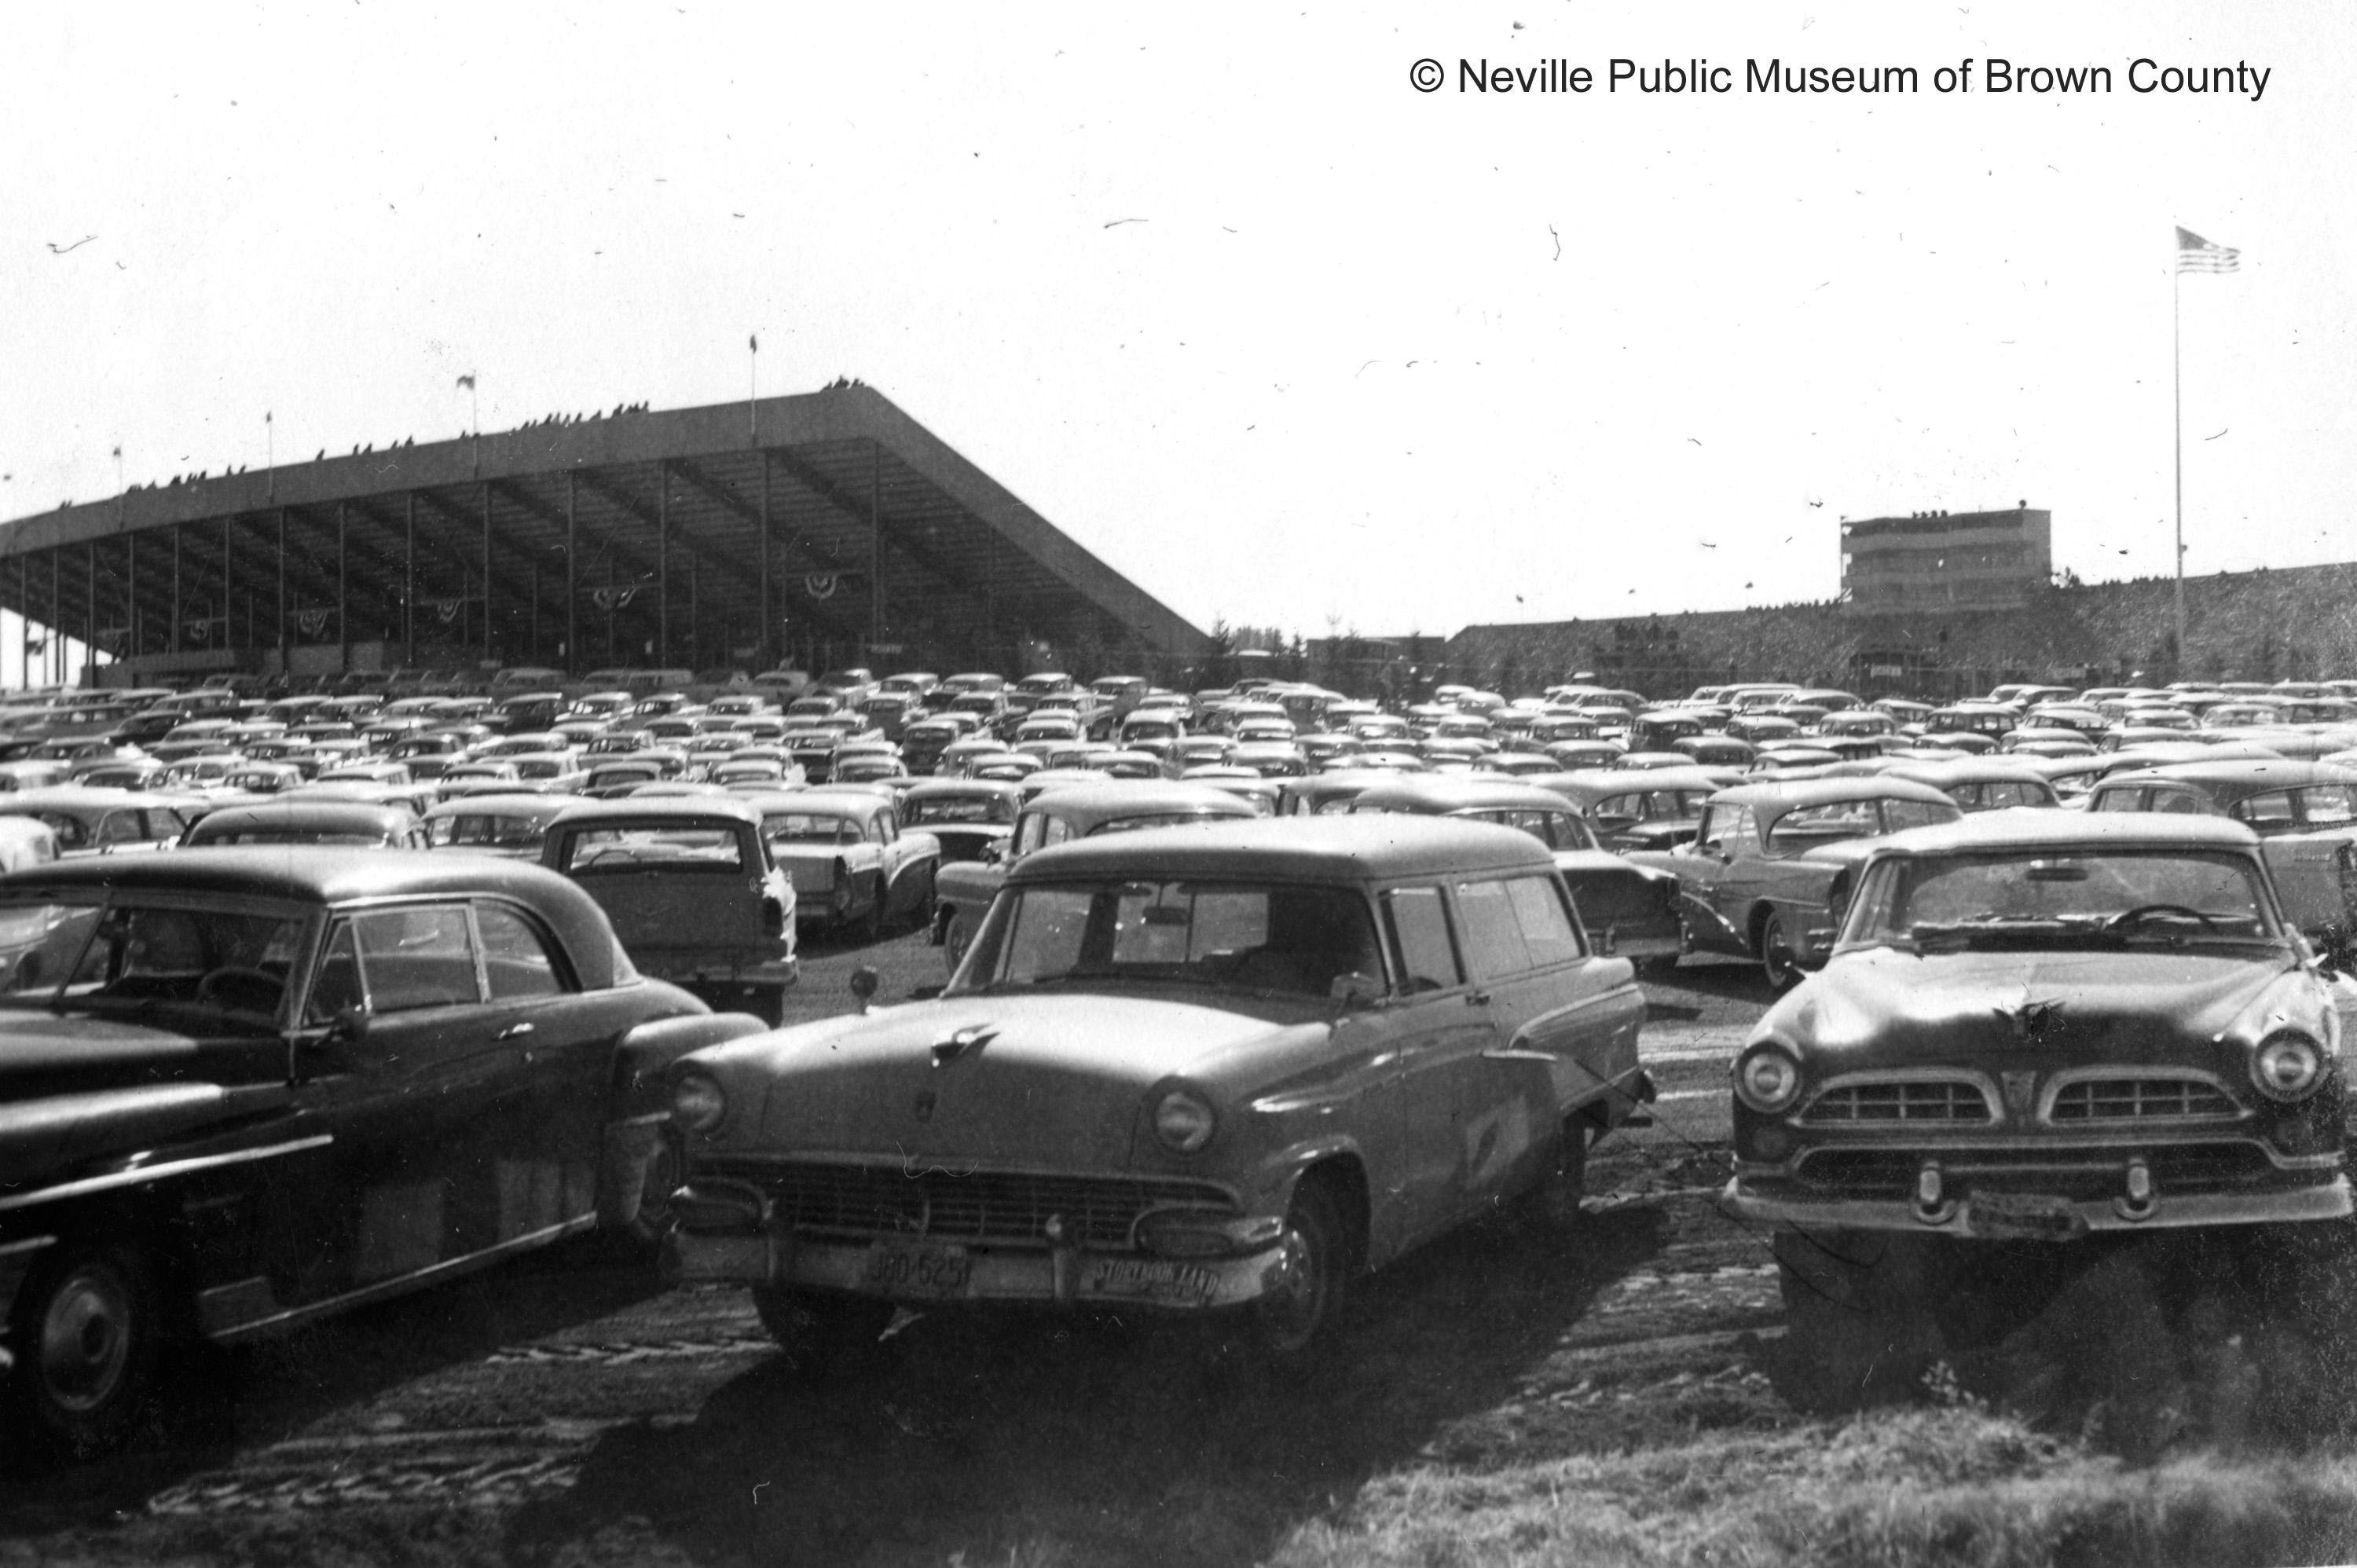 Green Bay Packers game fills grounds around New City Stadium with cars. It was built originally to seat 32,500.  In 1965, the stadium was renamed Lambeau Field after franchise founder Curly Lambeau. (Courtesy: Neville Public Museum of Brown County)